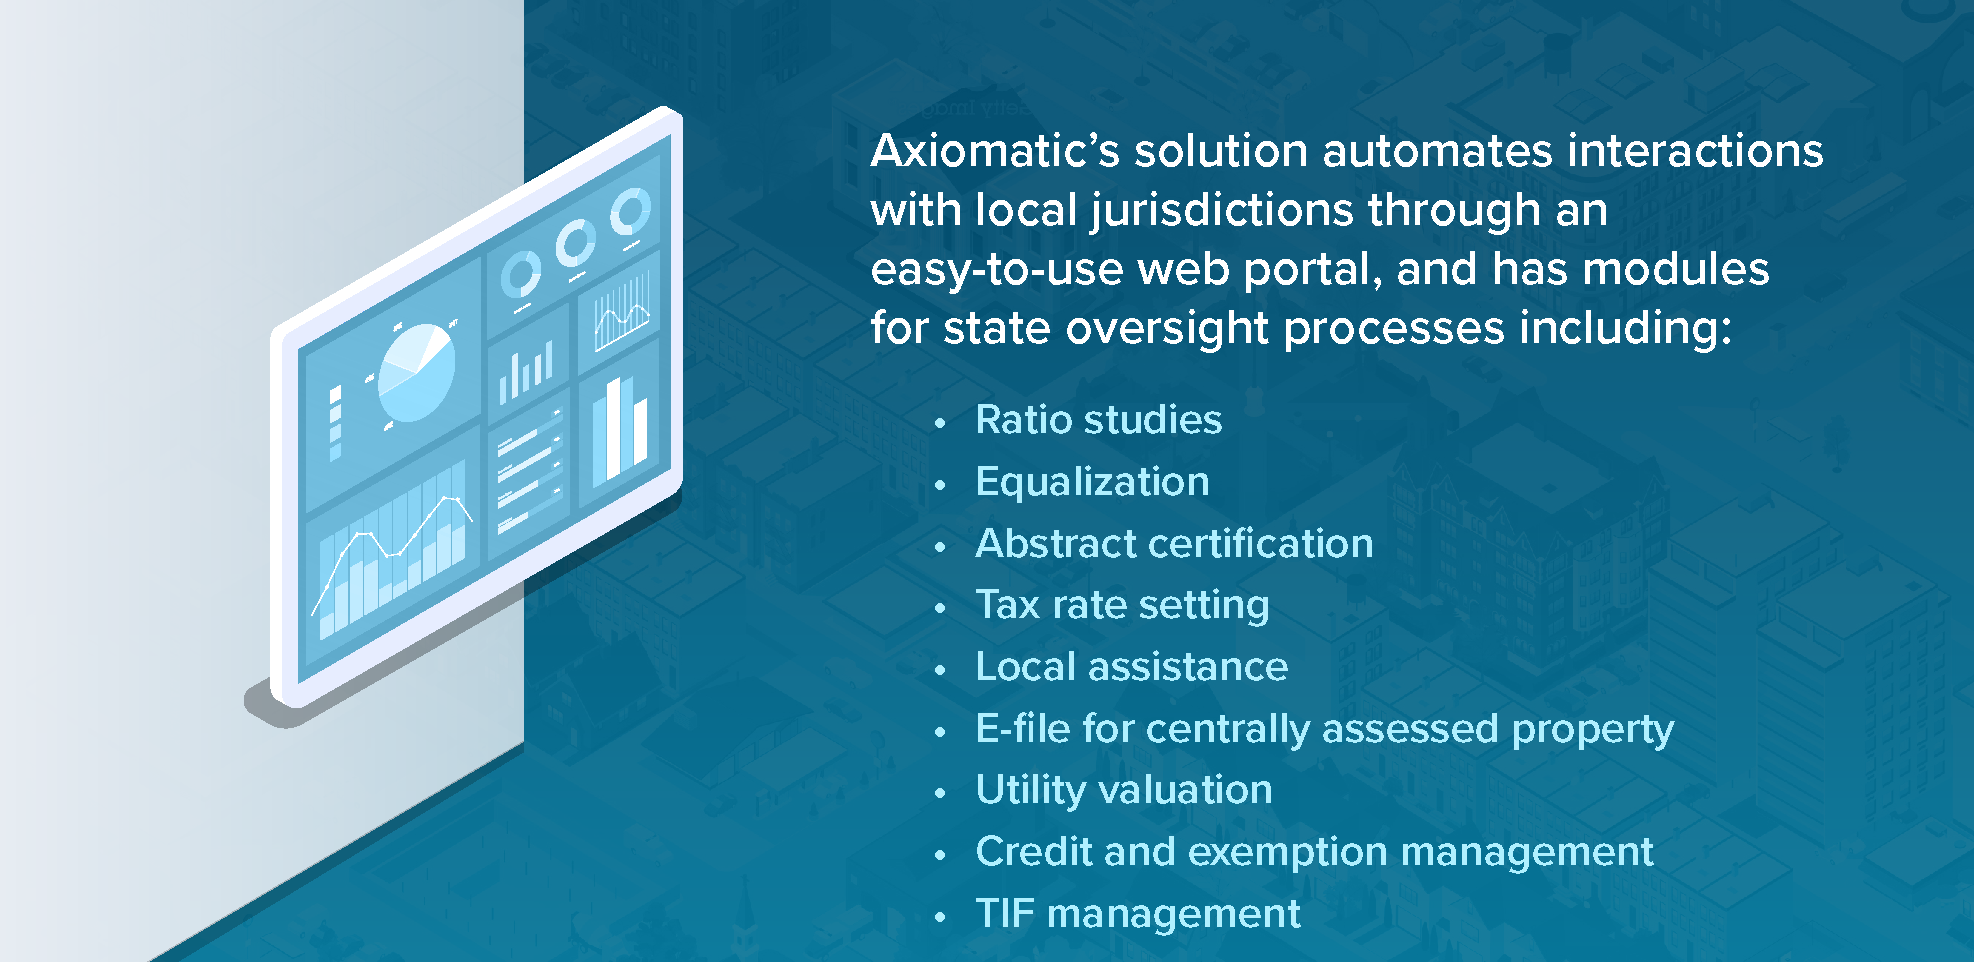 Automate your business - Go from Clerical to Compliance and gain deep insights and analytics.